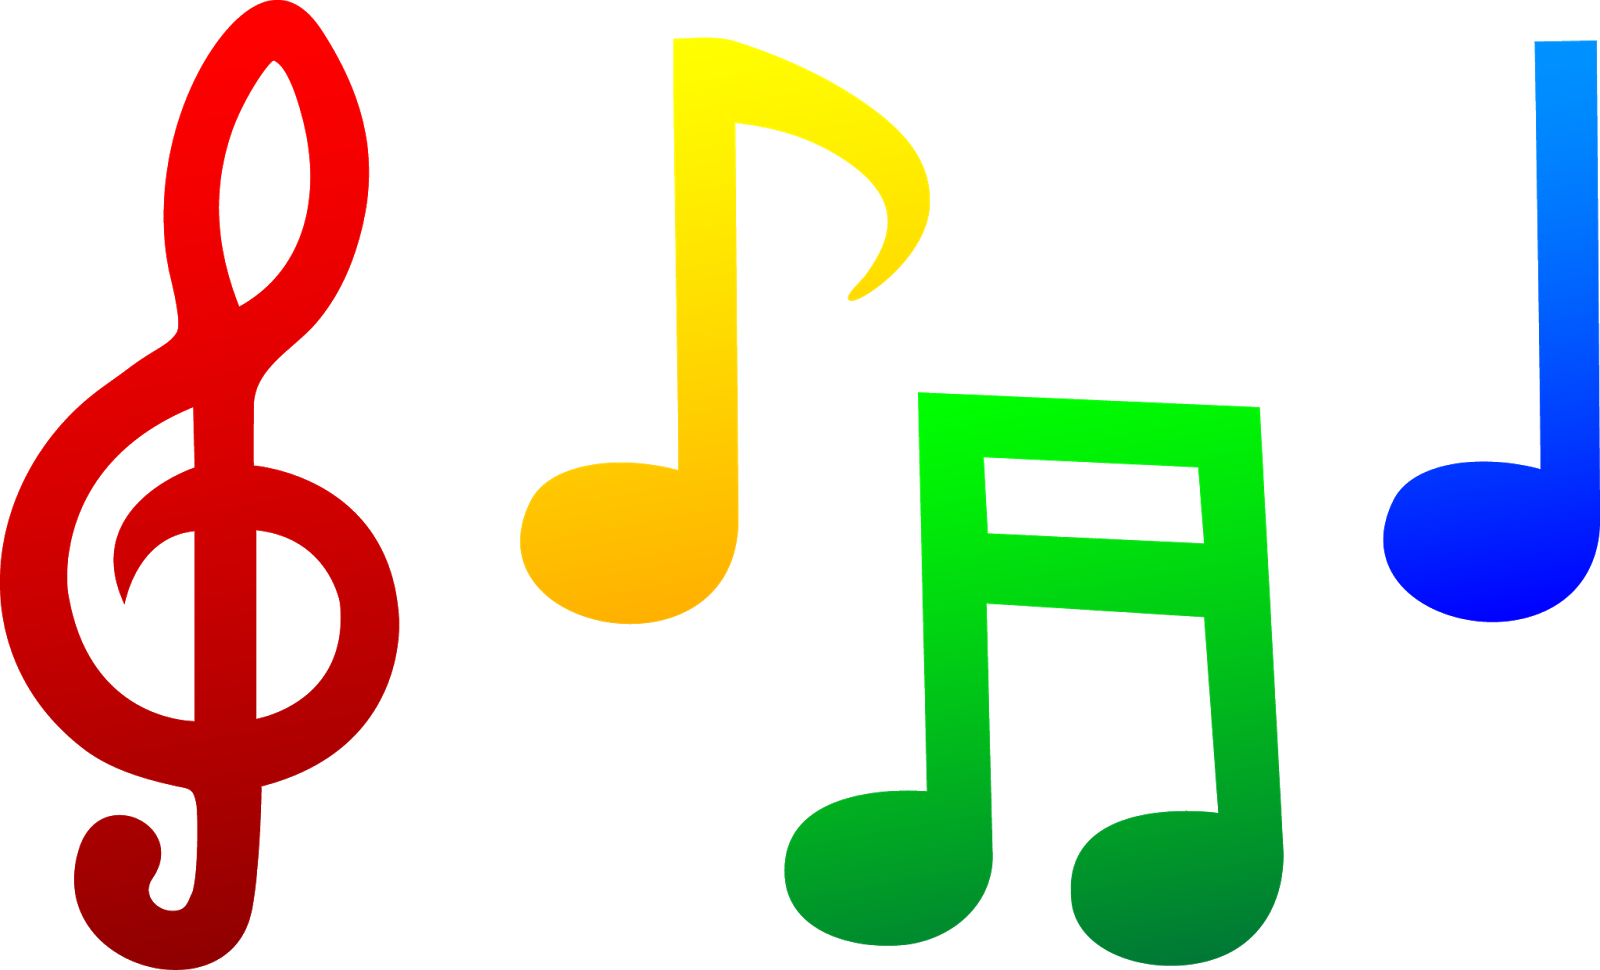 clipart images music - photo #38